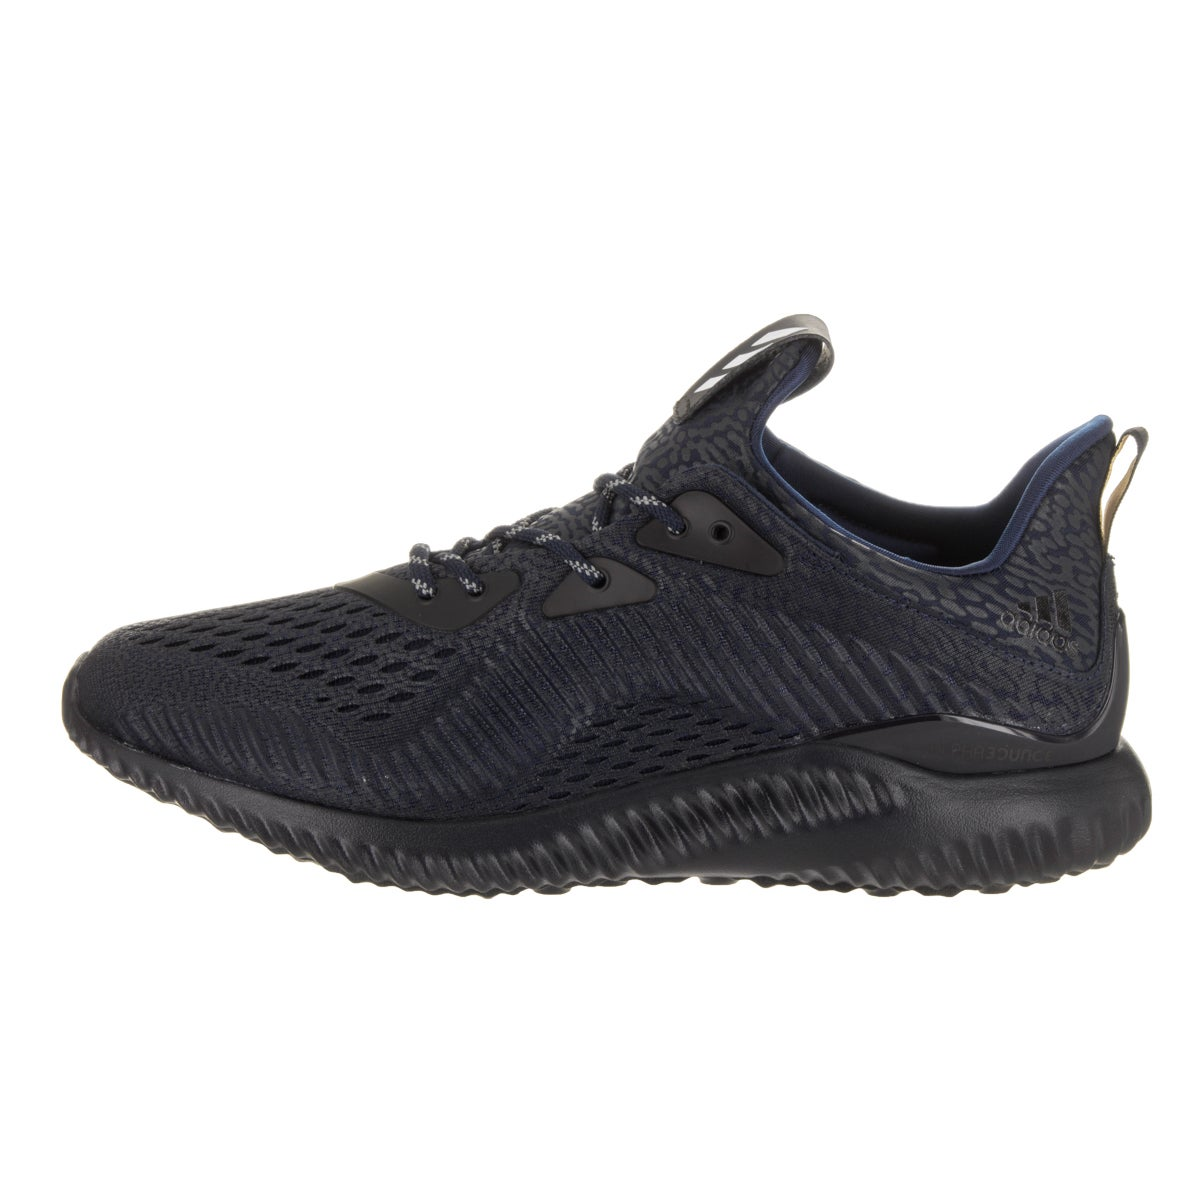 96bf928ad Shop Adidas Men s Alphabounce Ams Mystery Blue Mesh Running Shoe - Free  Shipping Today - Overstock.com - 14645766